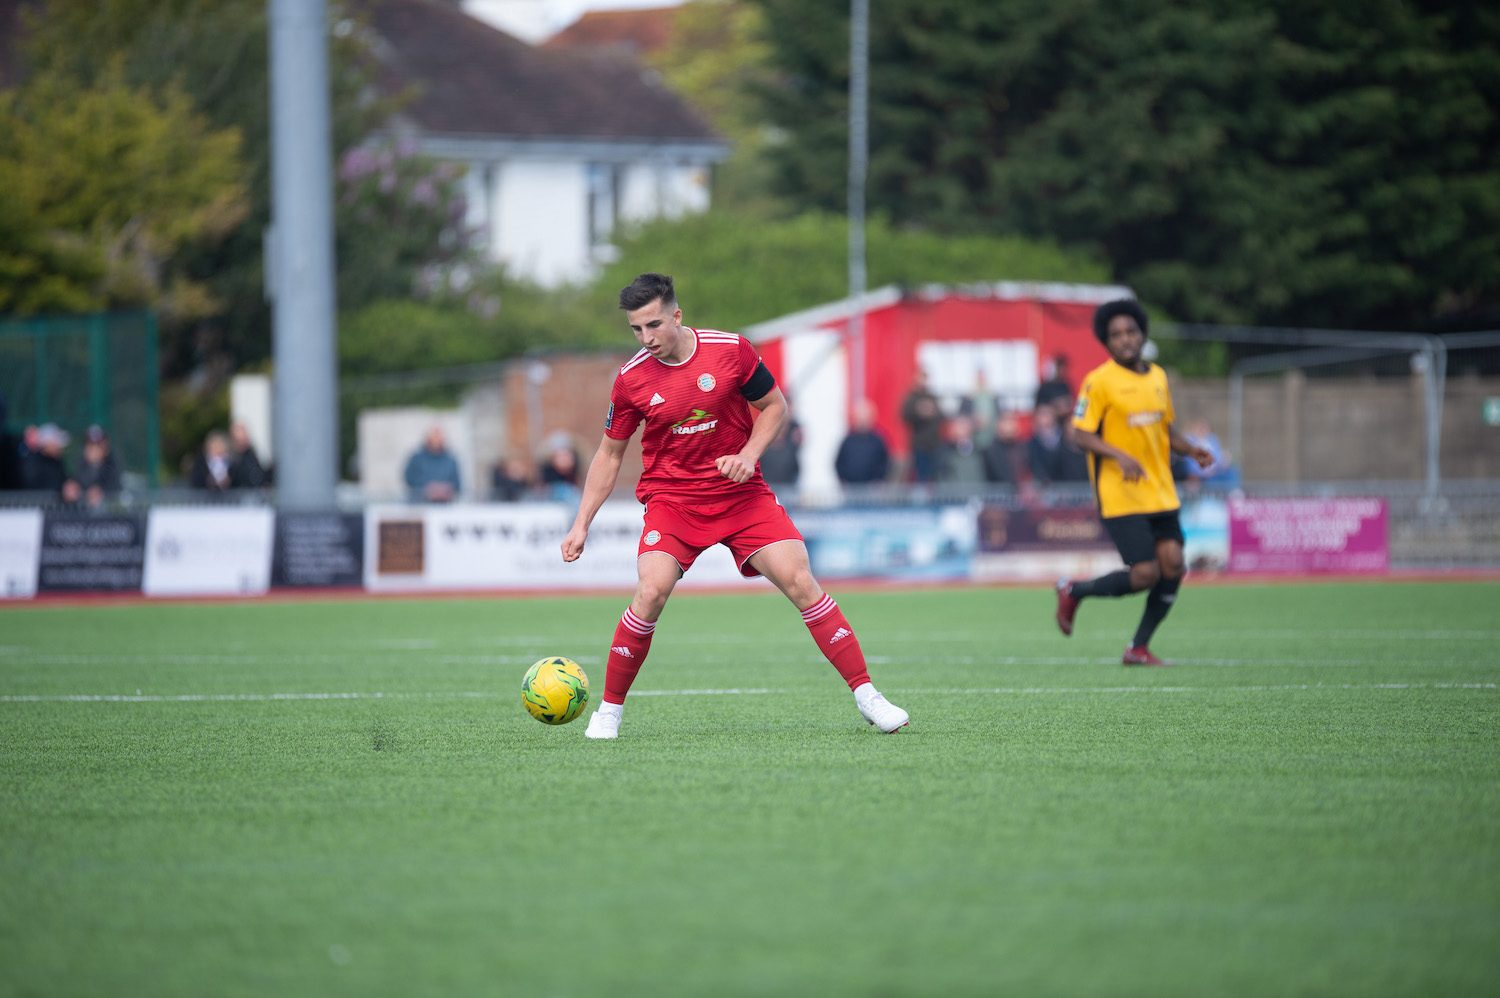 Gallery: Merstham [H] – League